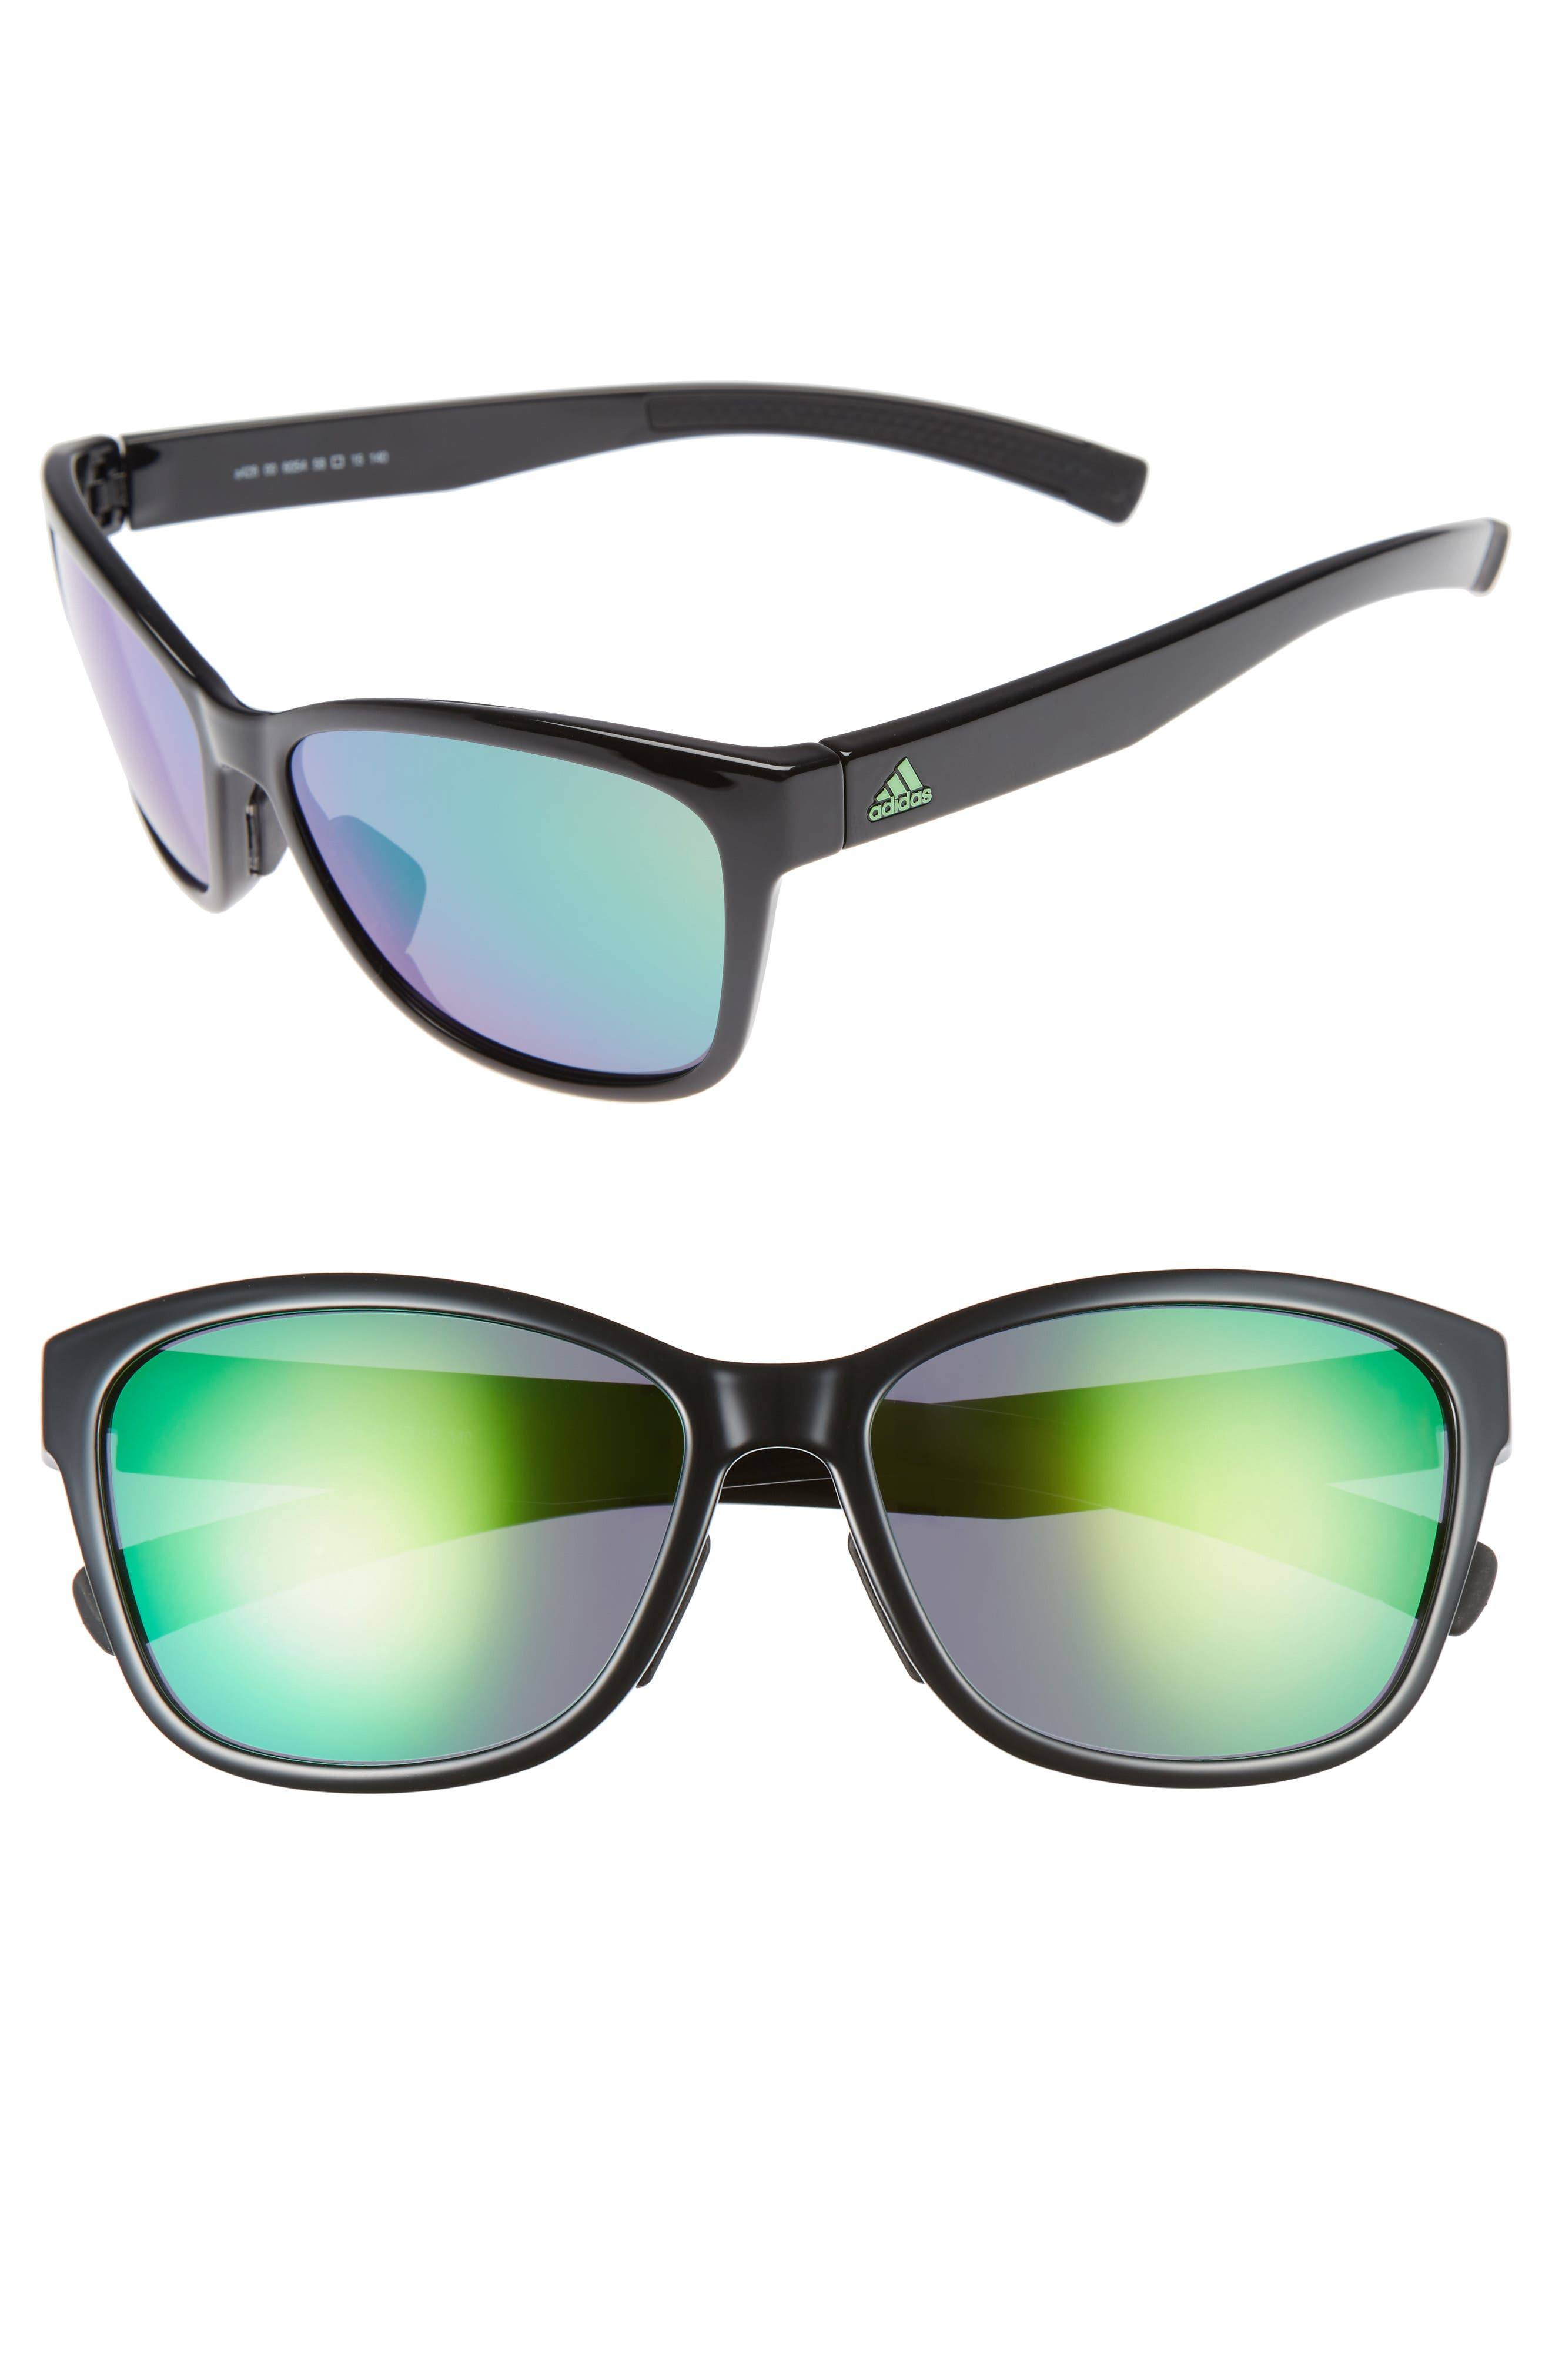 Excalate 58mm Mirrored Sunglasses,                             Main thumbnail 1, color,                             SHINY BLACK/ GREEN MIRROR